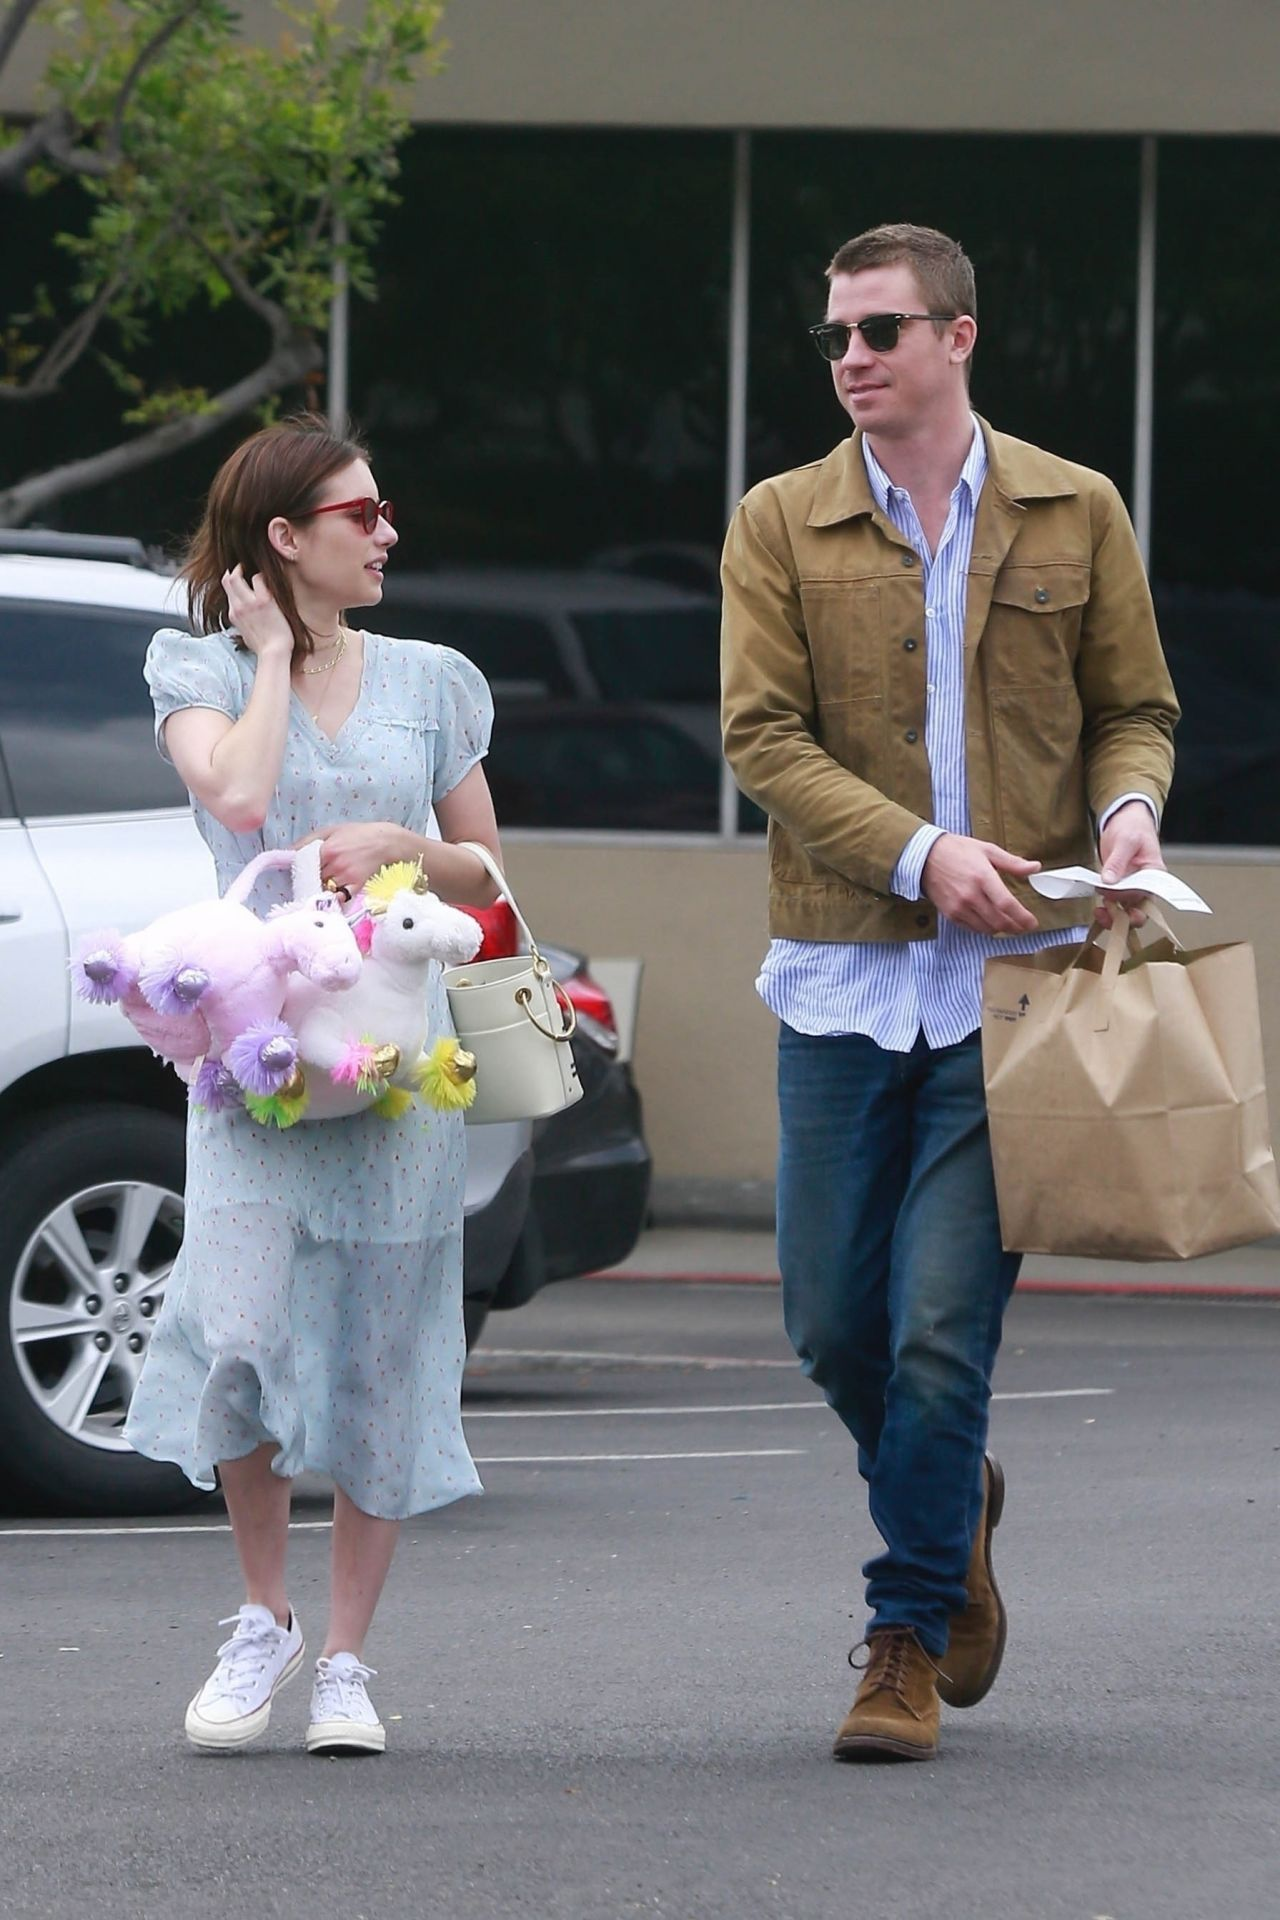 Emma Roberts Shopping On Easter In Los Angeles 04 21 2019